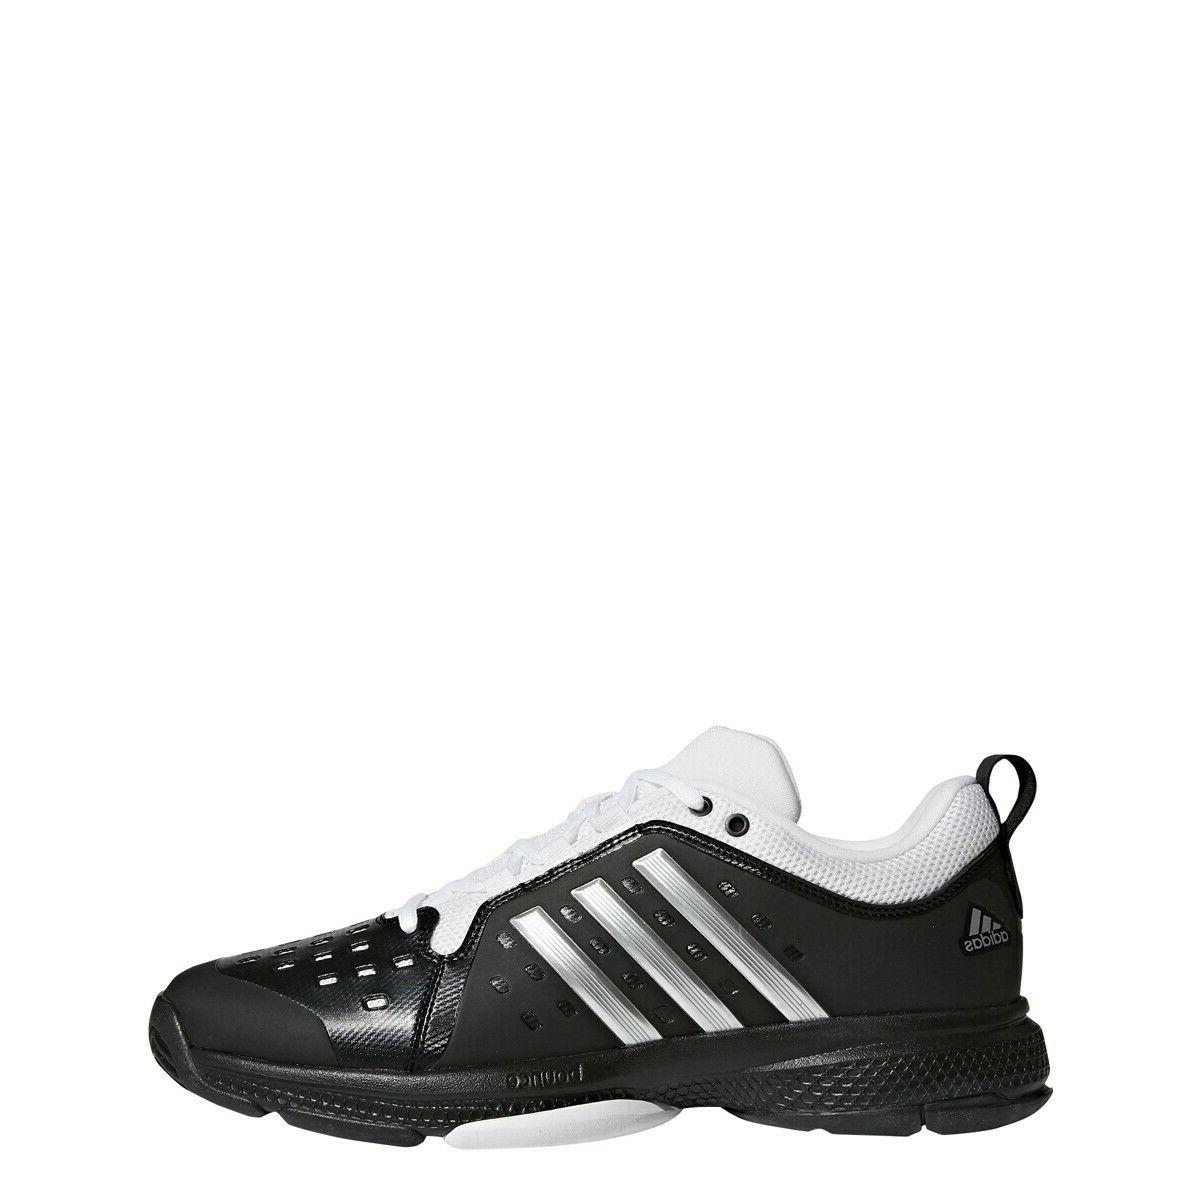 ADIDAS CLASSIC BOUNCE TENNIS SHOES CG3108